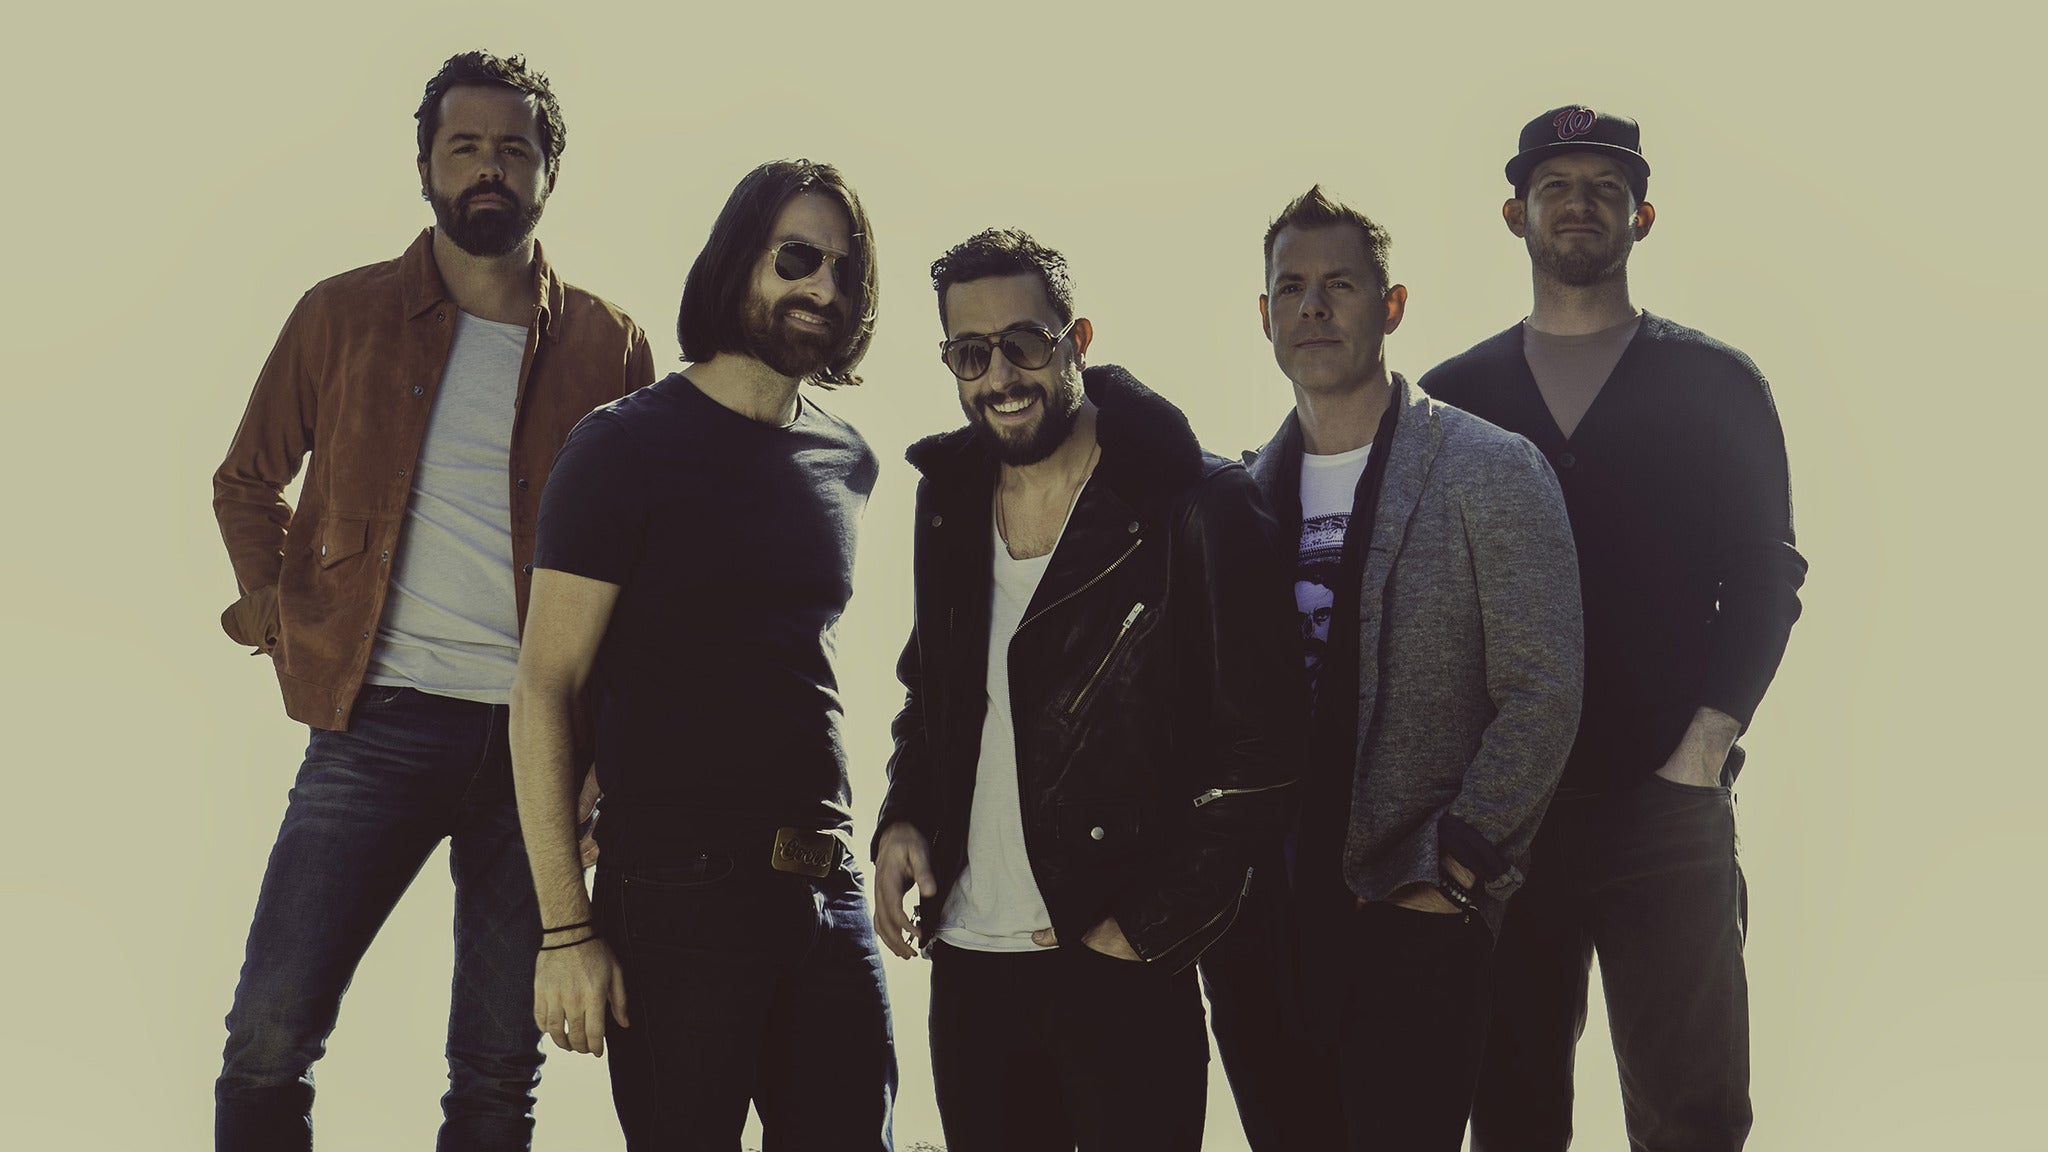 Old Dominion's Make It Sweet Tour at The Sanford Center